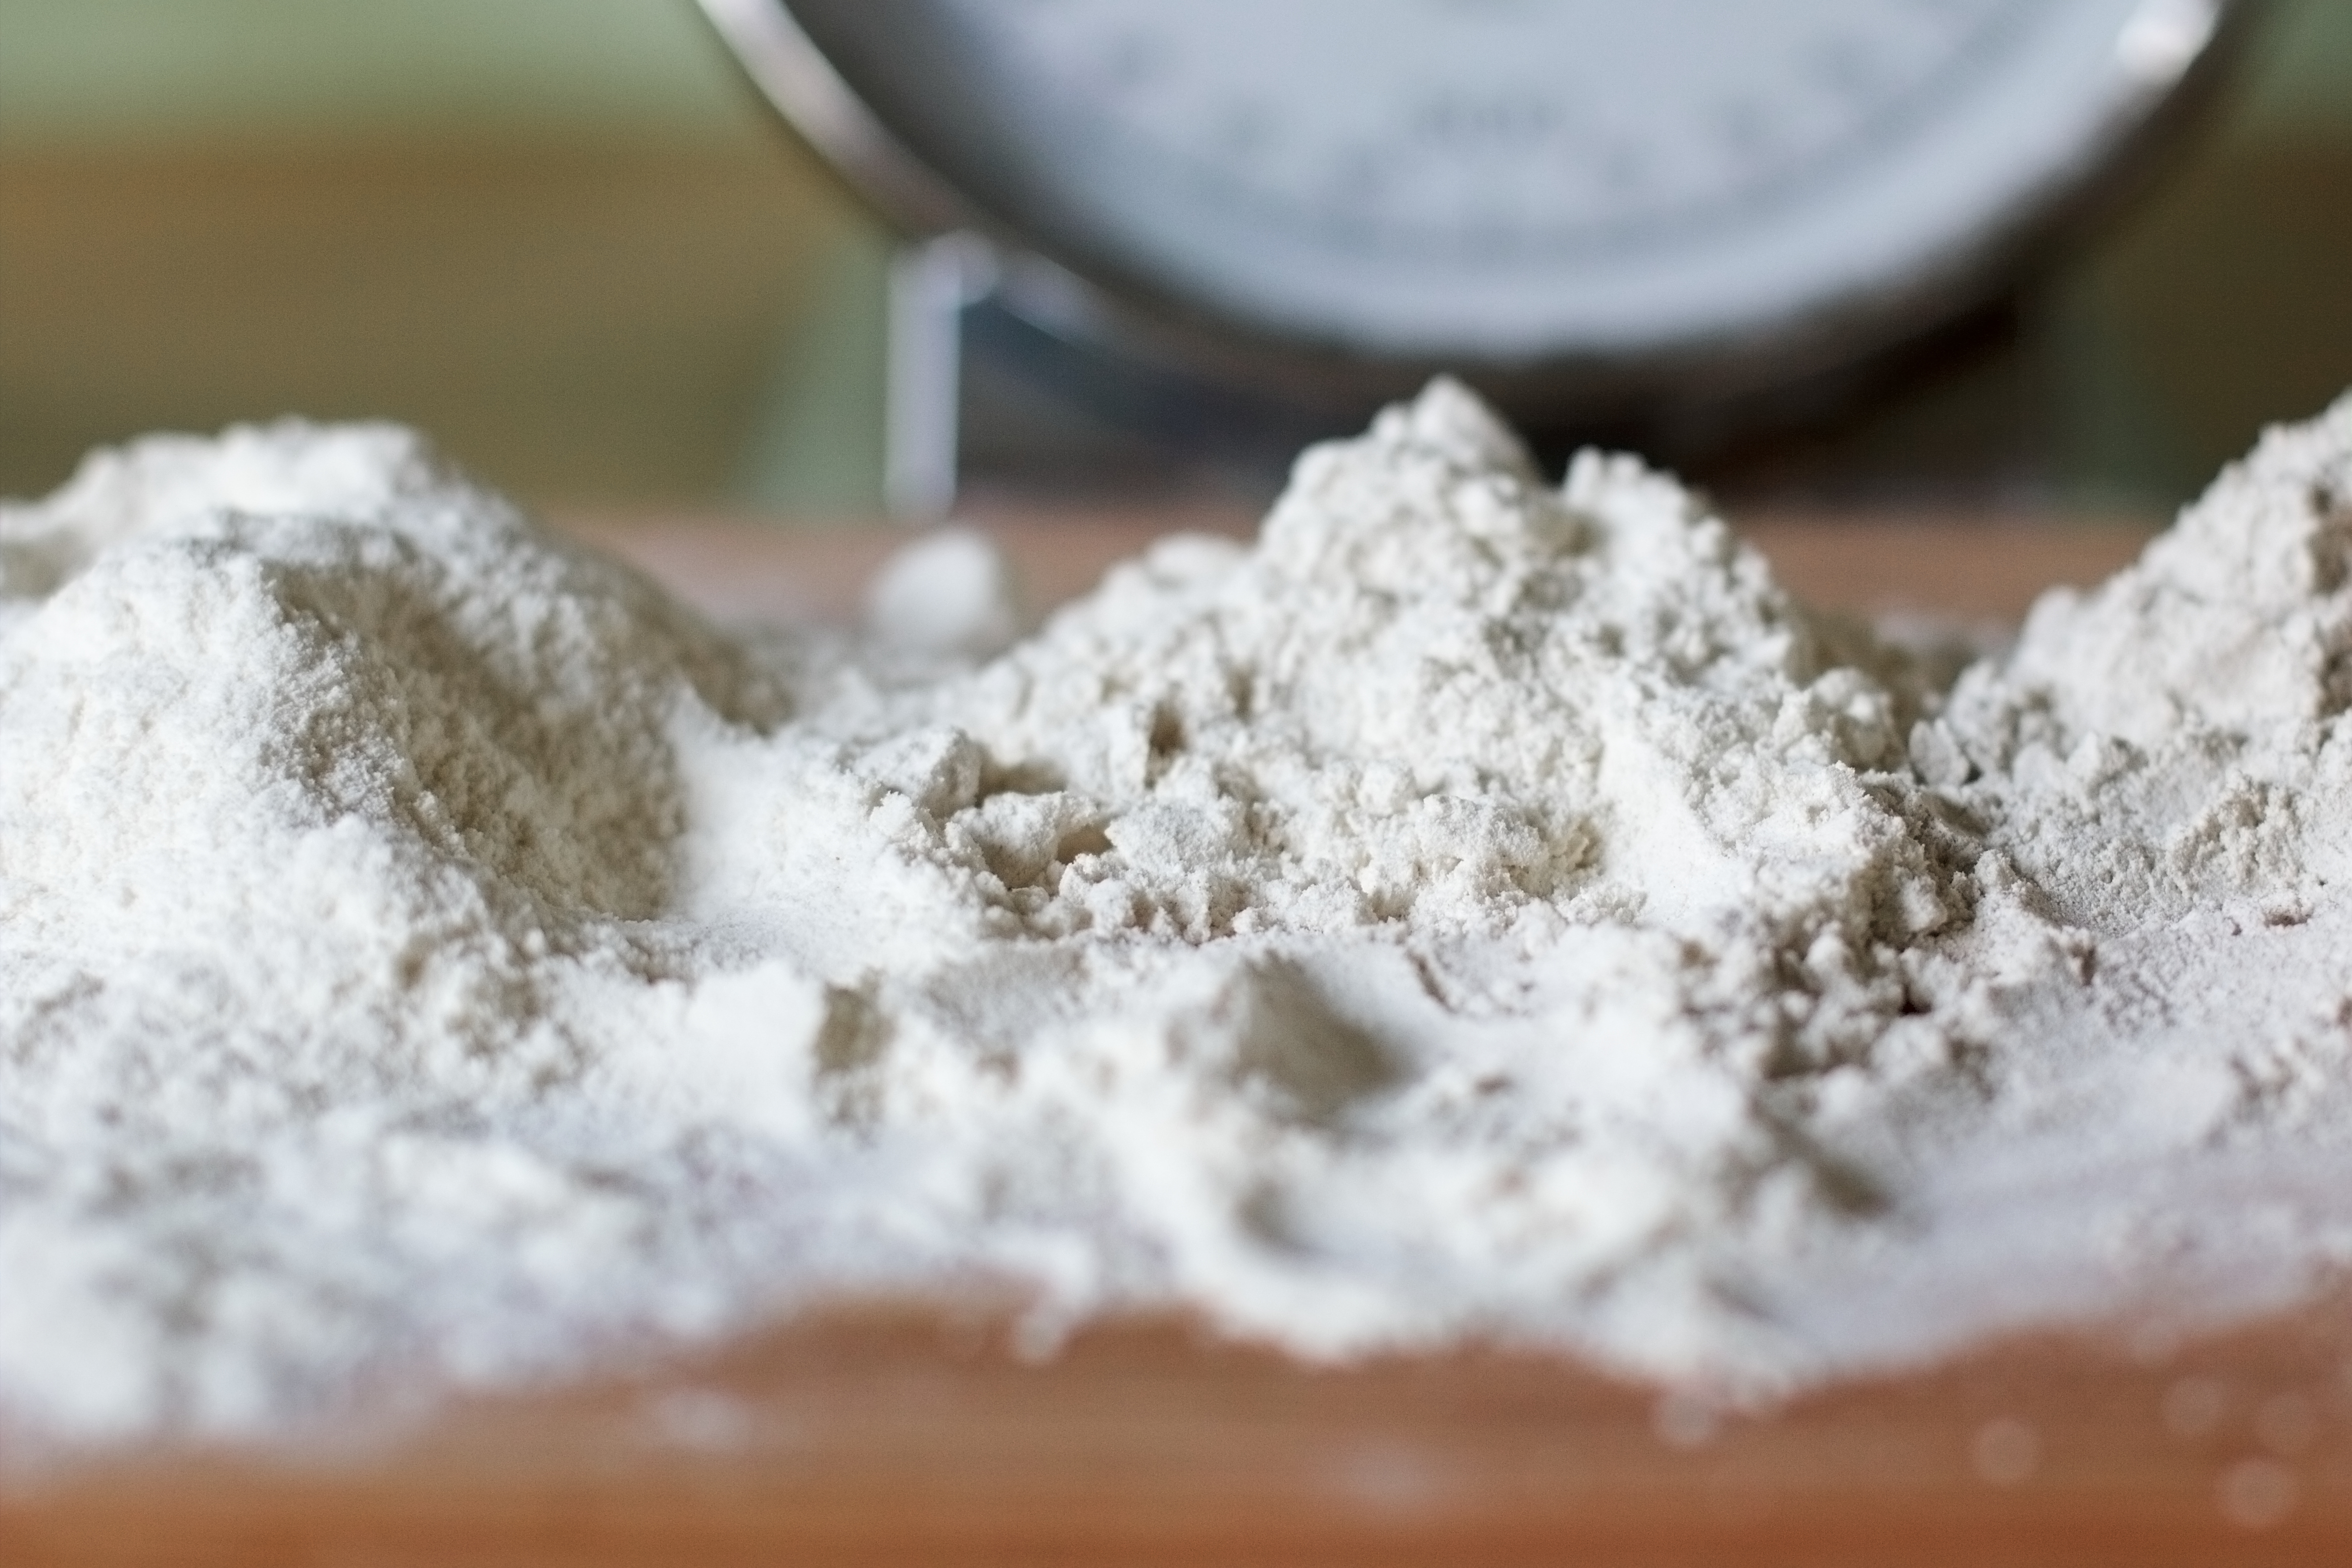 CINDY's Kitchen~~Meow Meow: 教學:各種麵粉的分別 Types of Flour for Baking